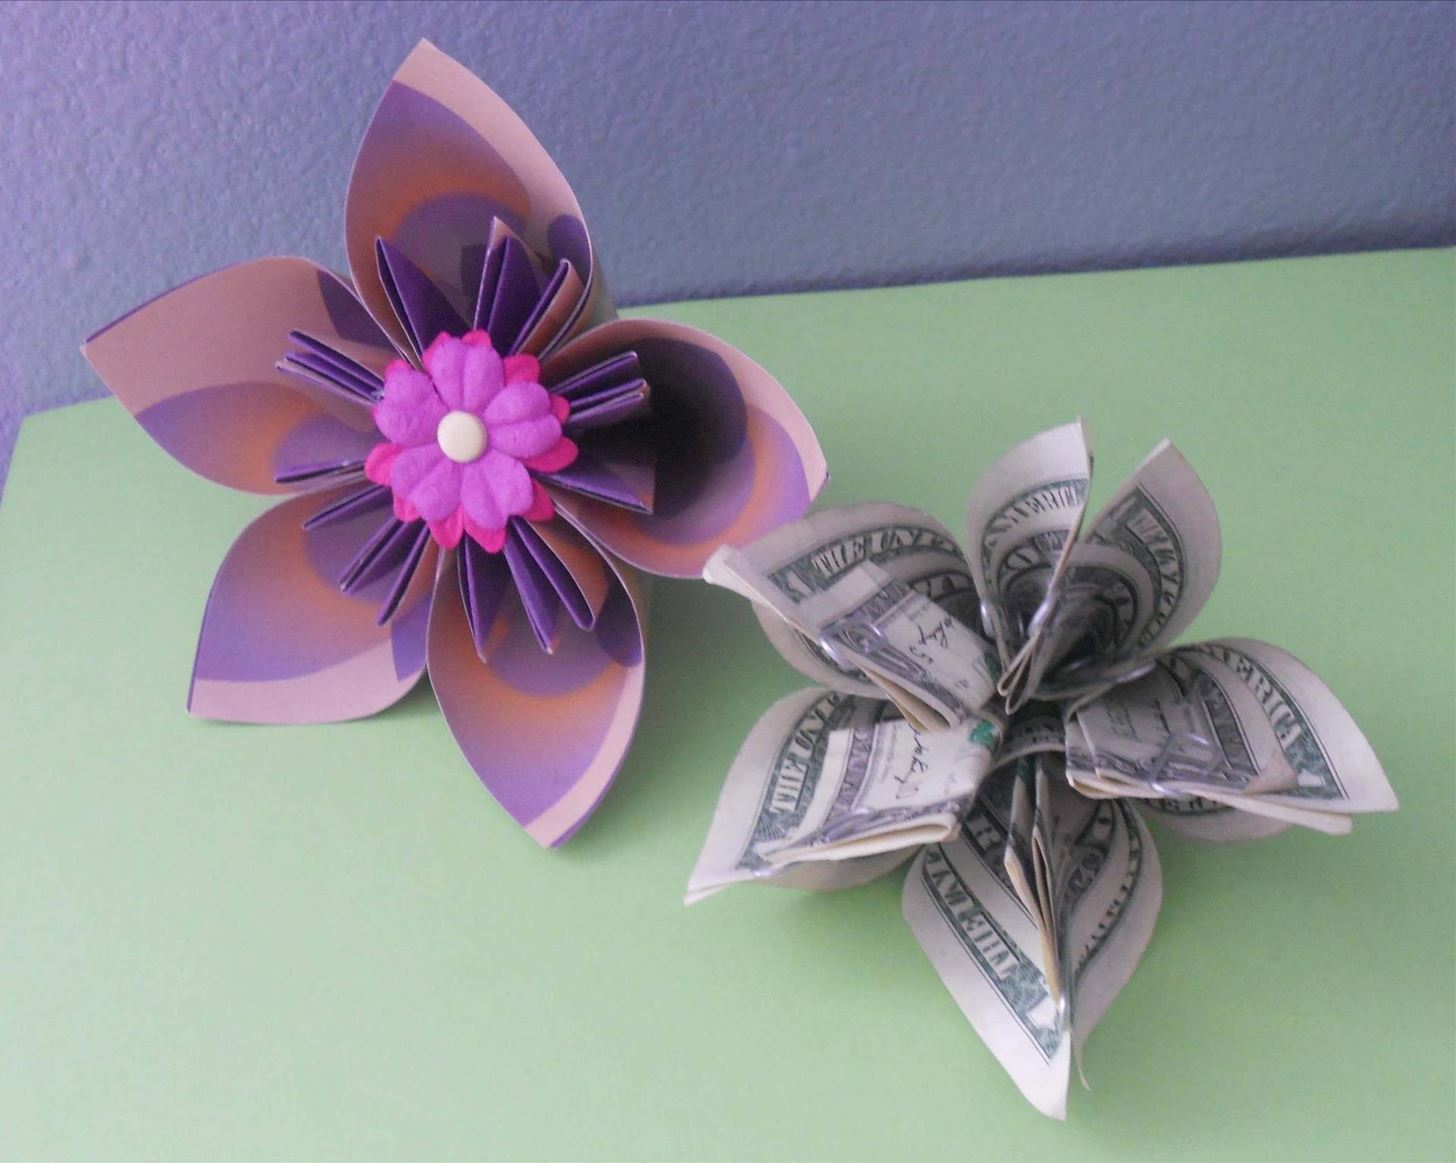 Money origami flower edition 10 different ways to fold a dollar image via tqn mightylinksfo